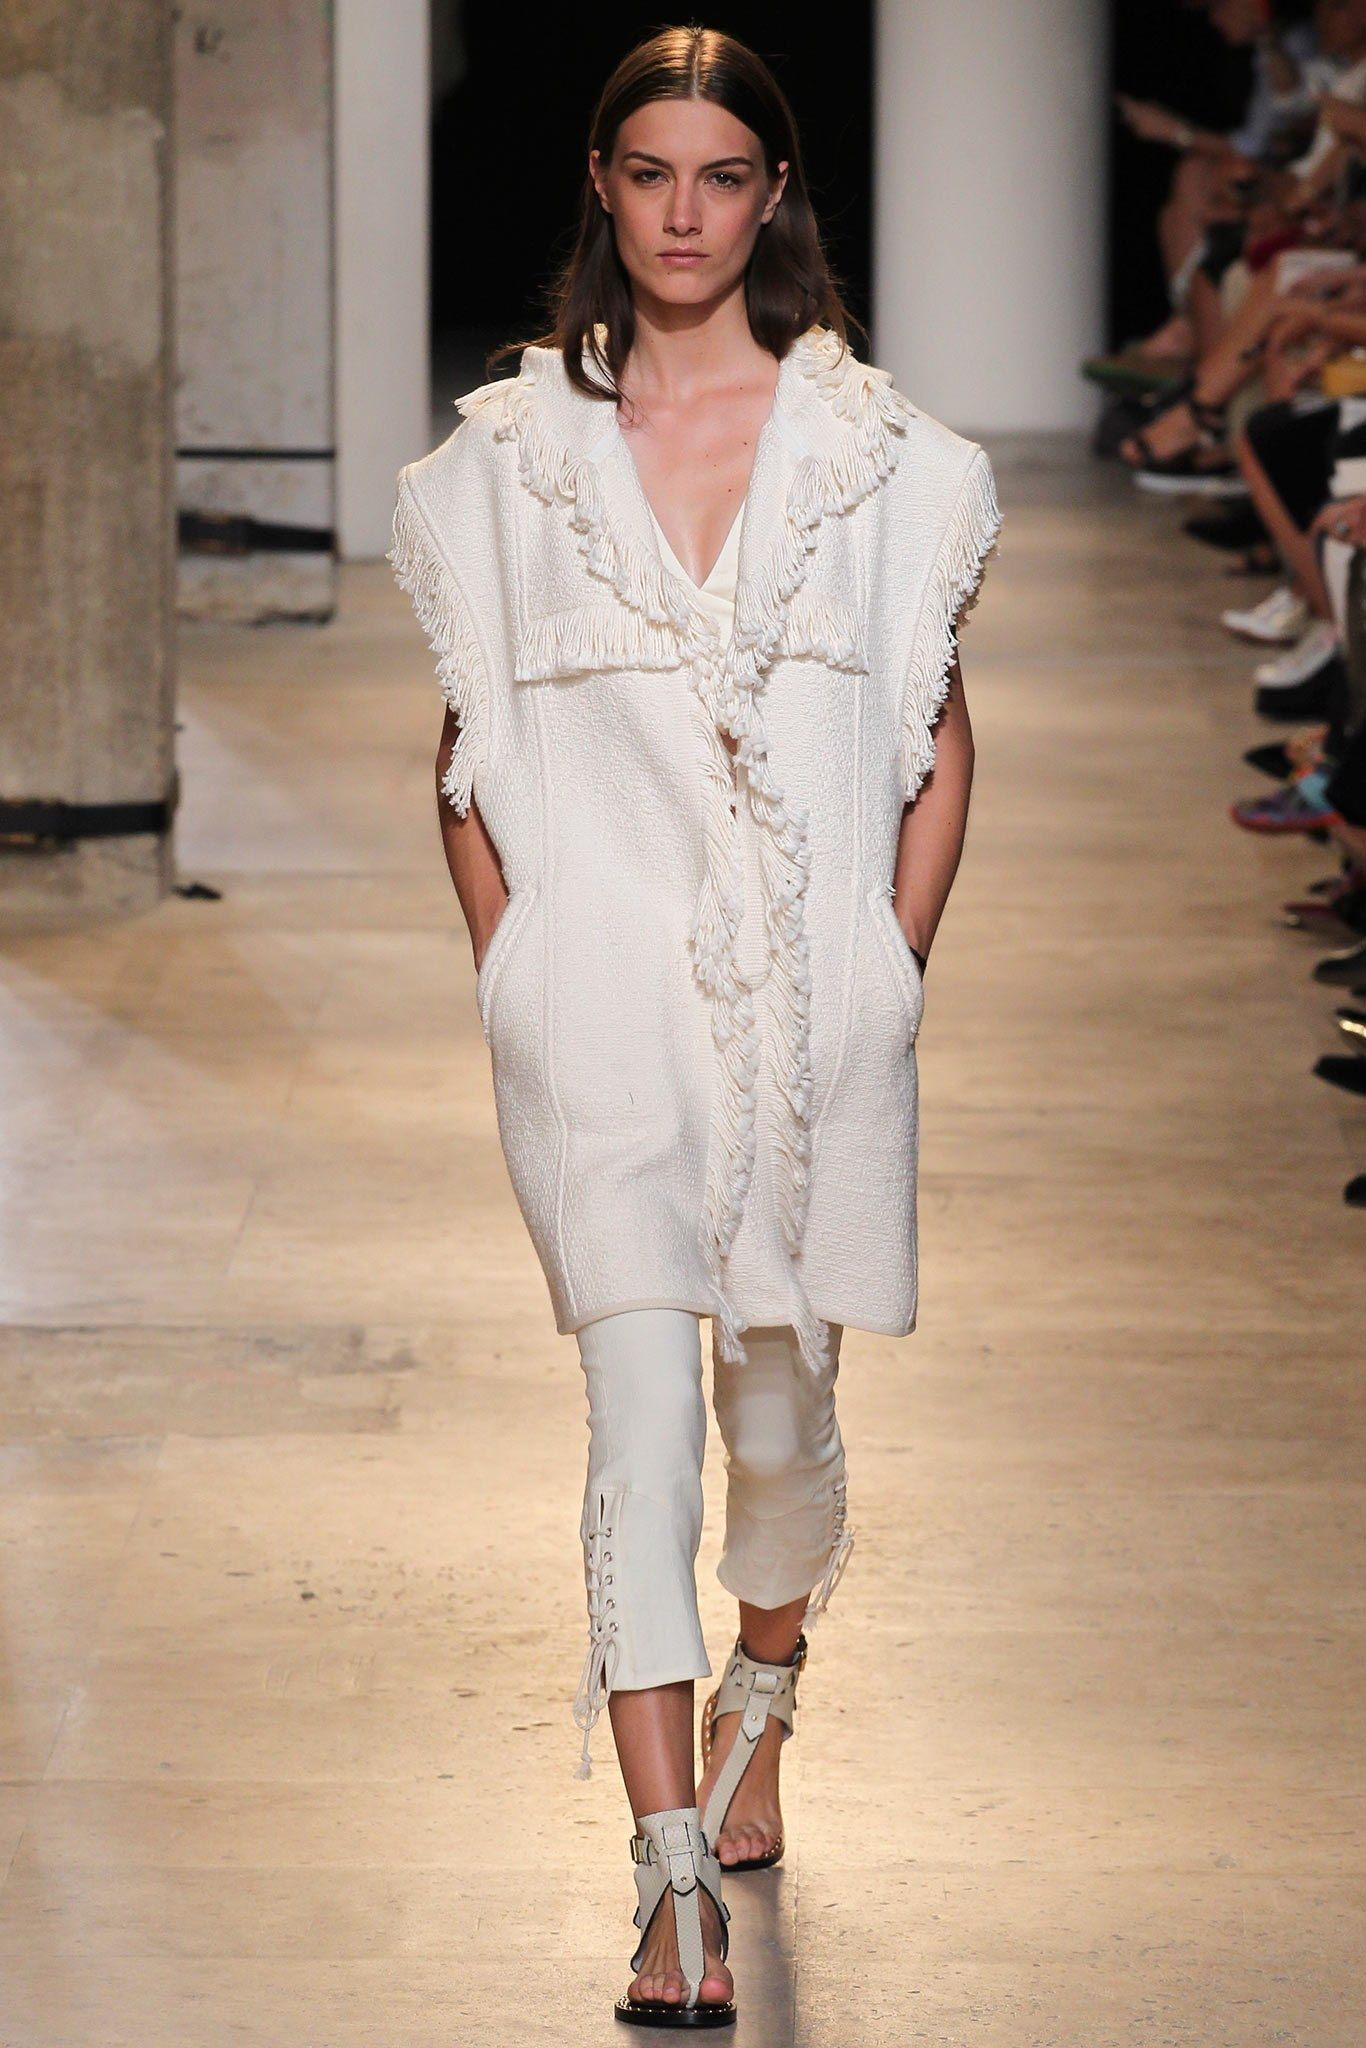 f379309758 Isabel Marant Spring 2015 Ready-to-Wear Fashion Show - Ronja Furrer (IMG)